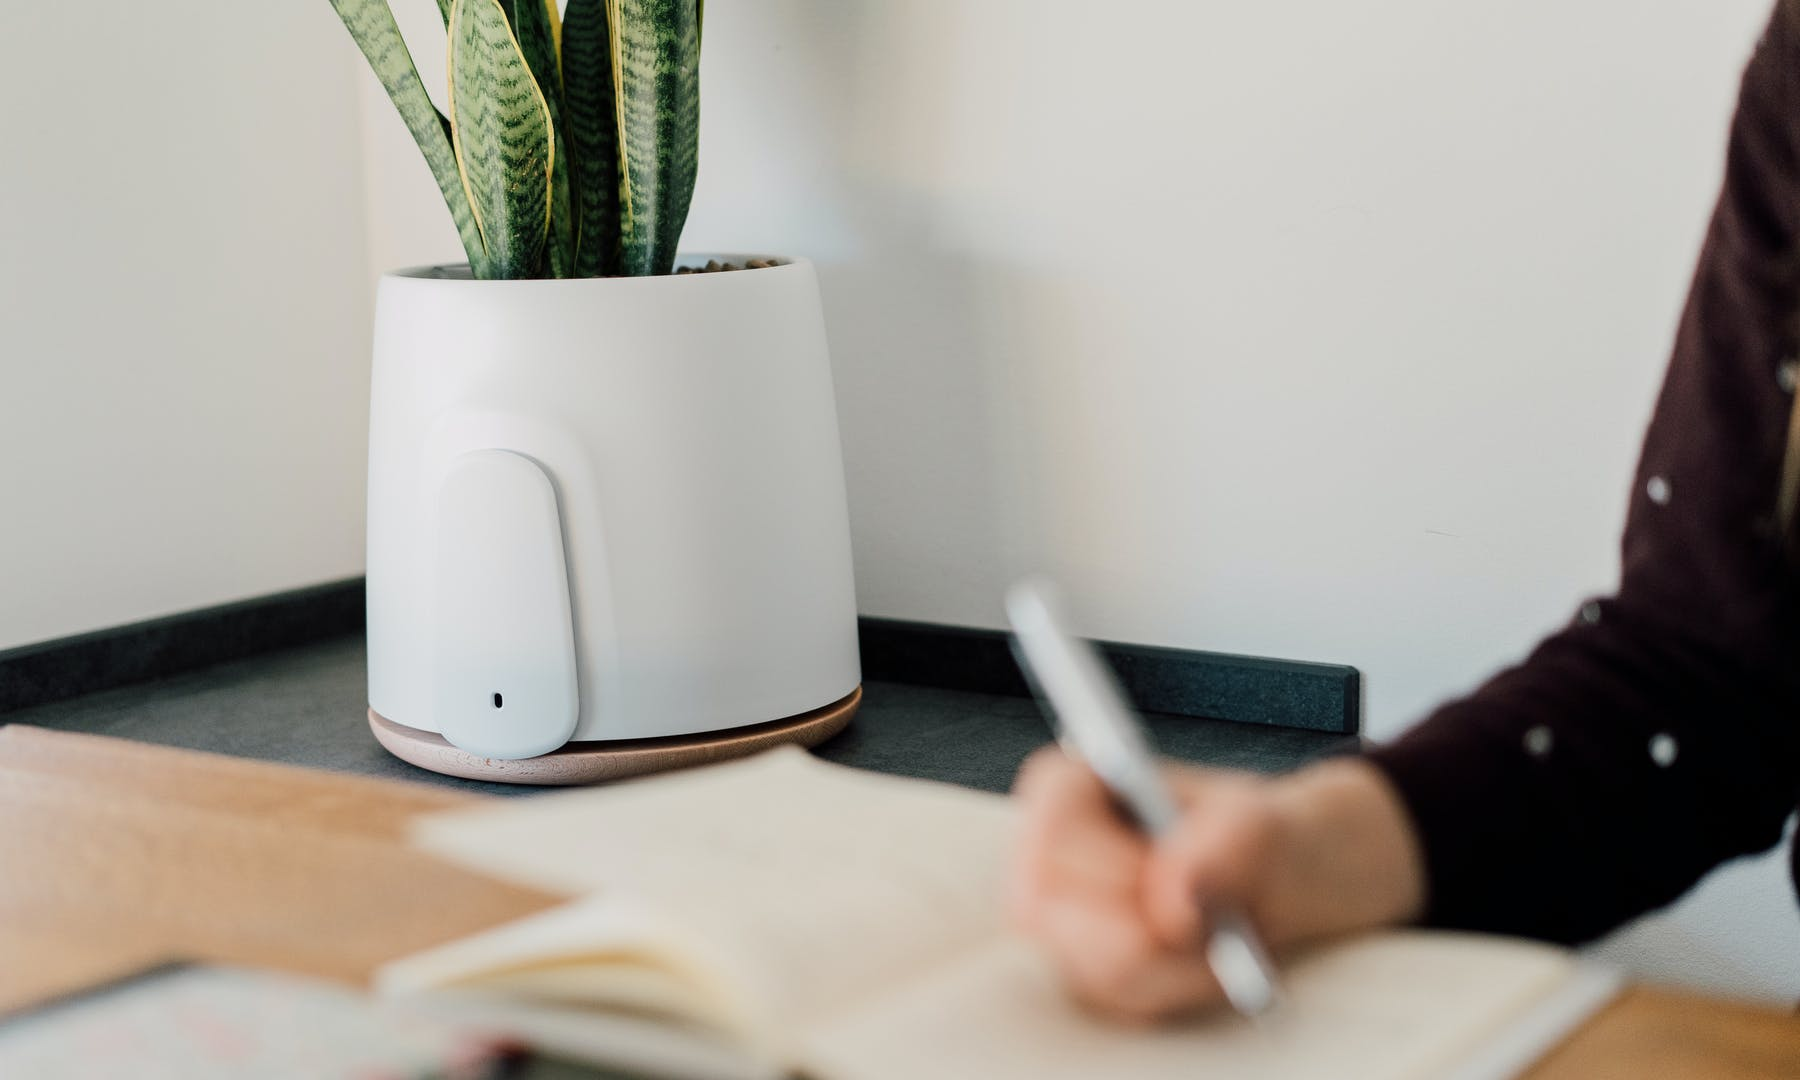 Natede is the sustainable and iot solution against air pollution